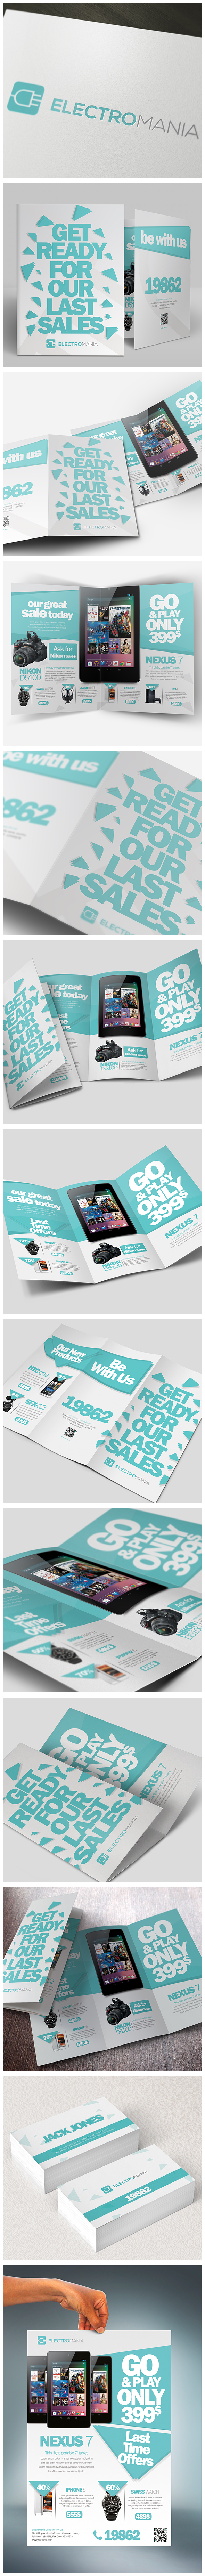 Brochures Pack A4 + Trifold + Flyer + Card by Unicogfx, via Behance